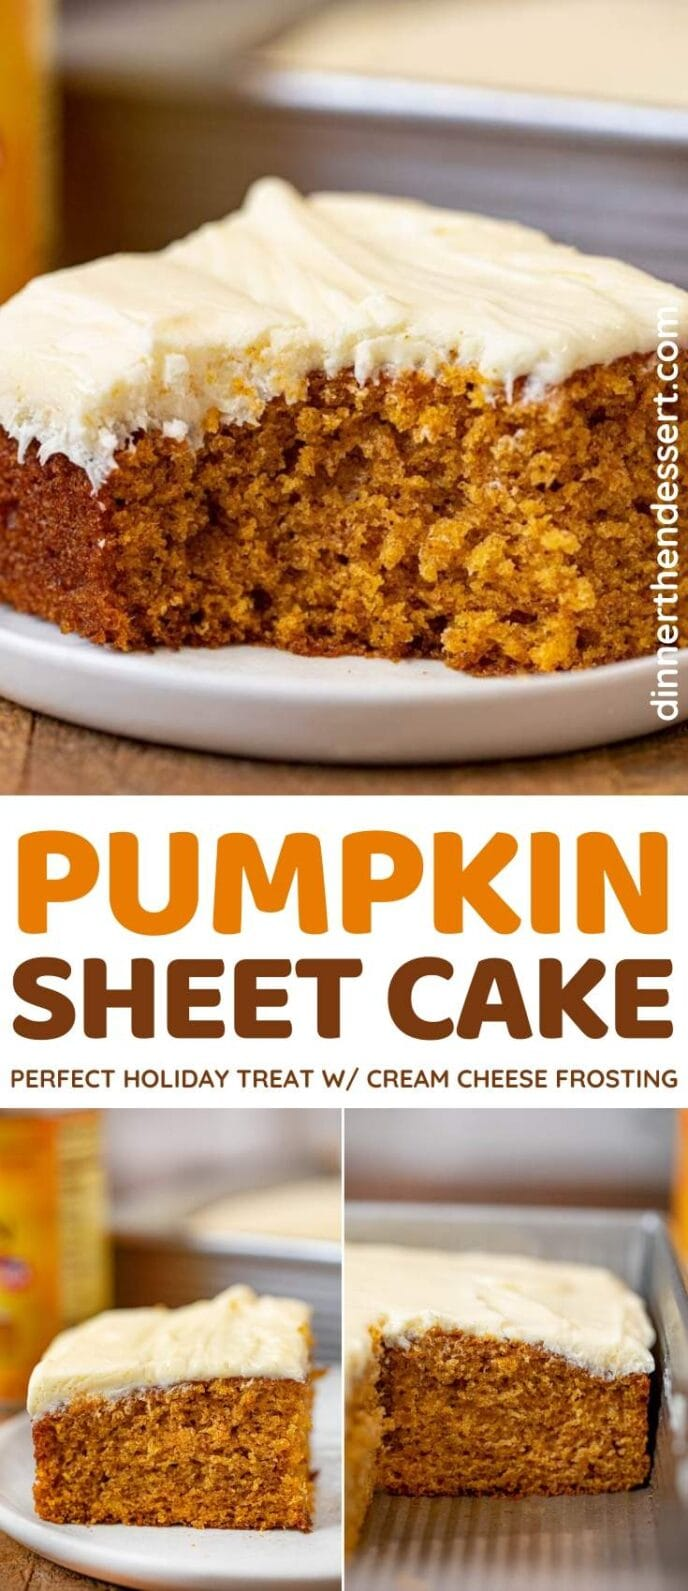 Pumpkin Sheet Cake collage